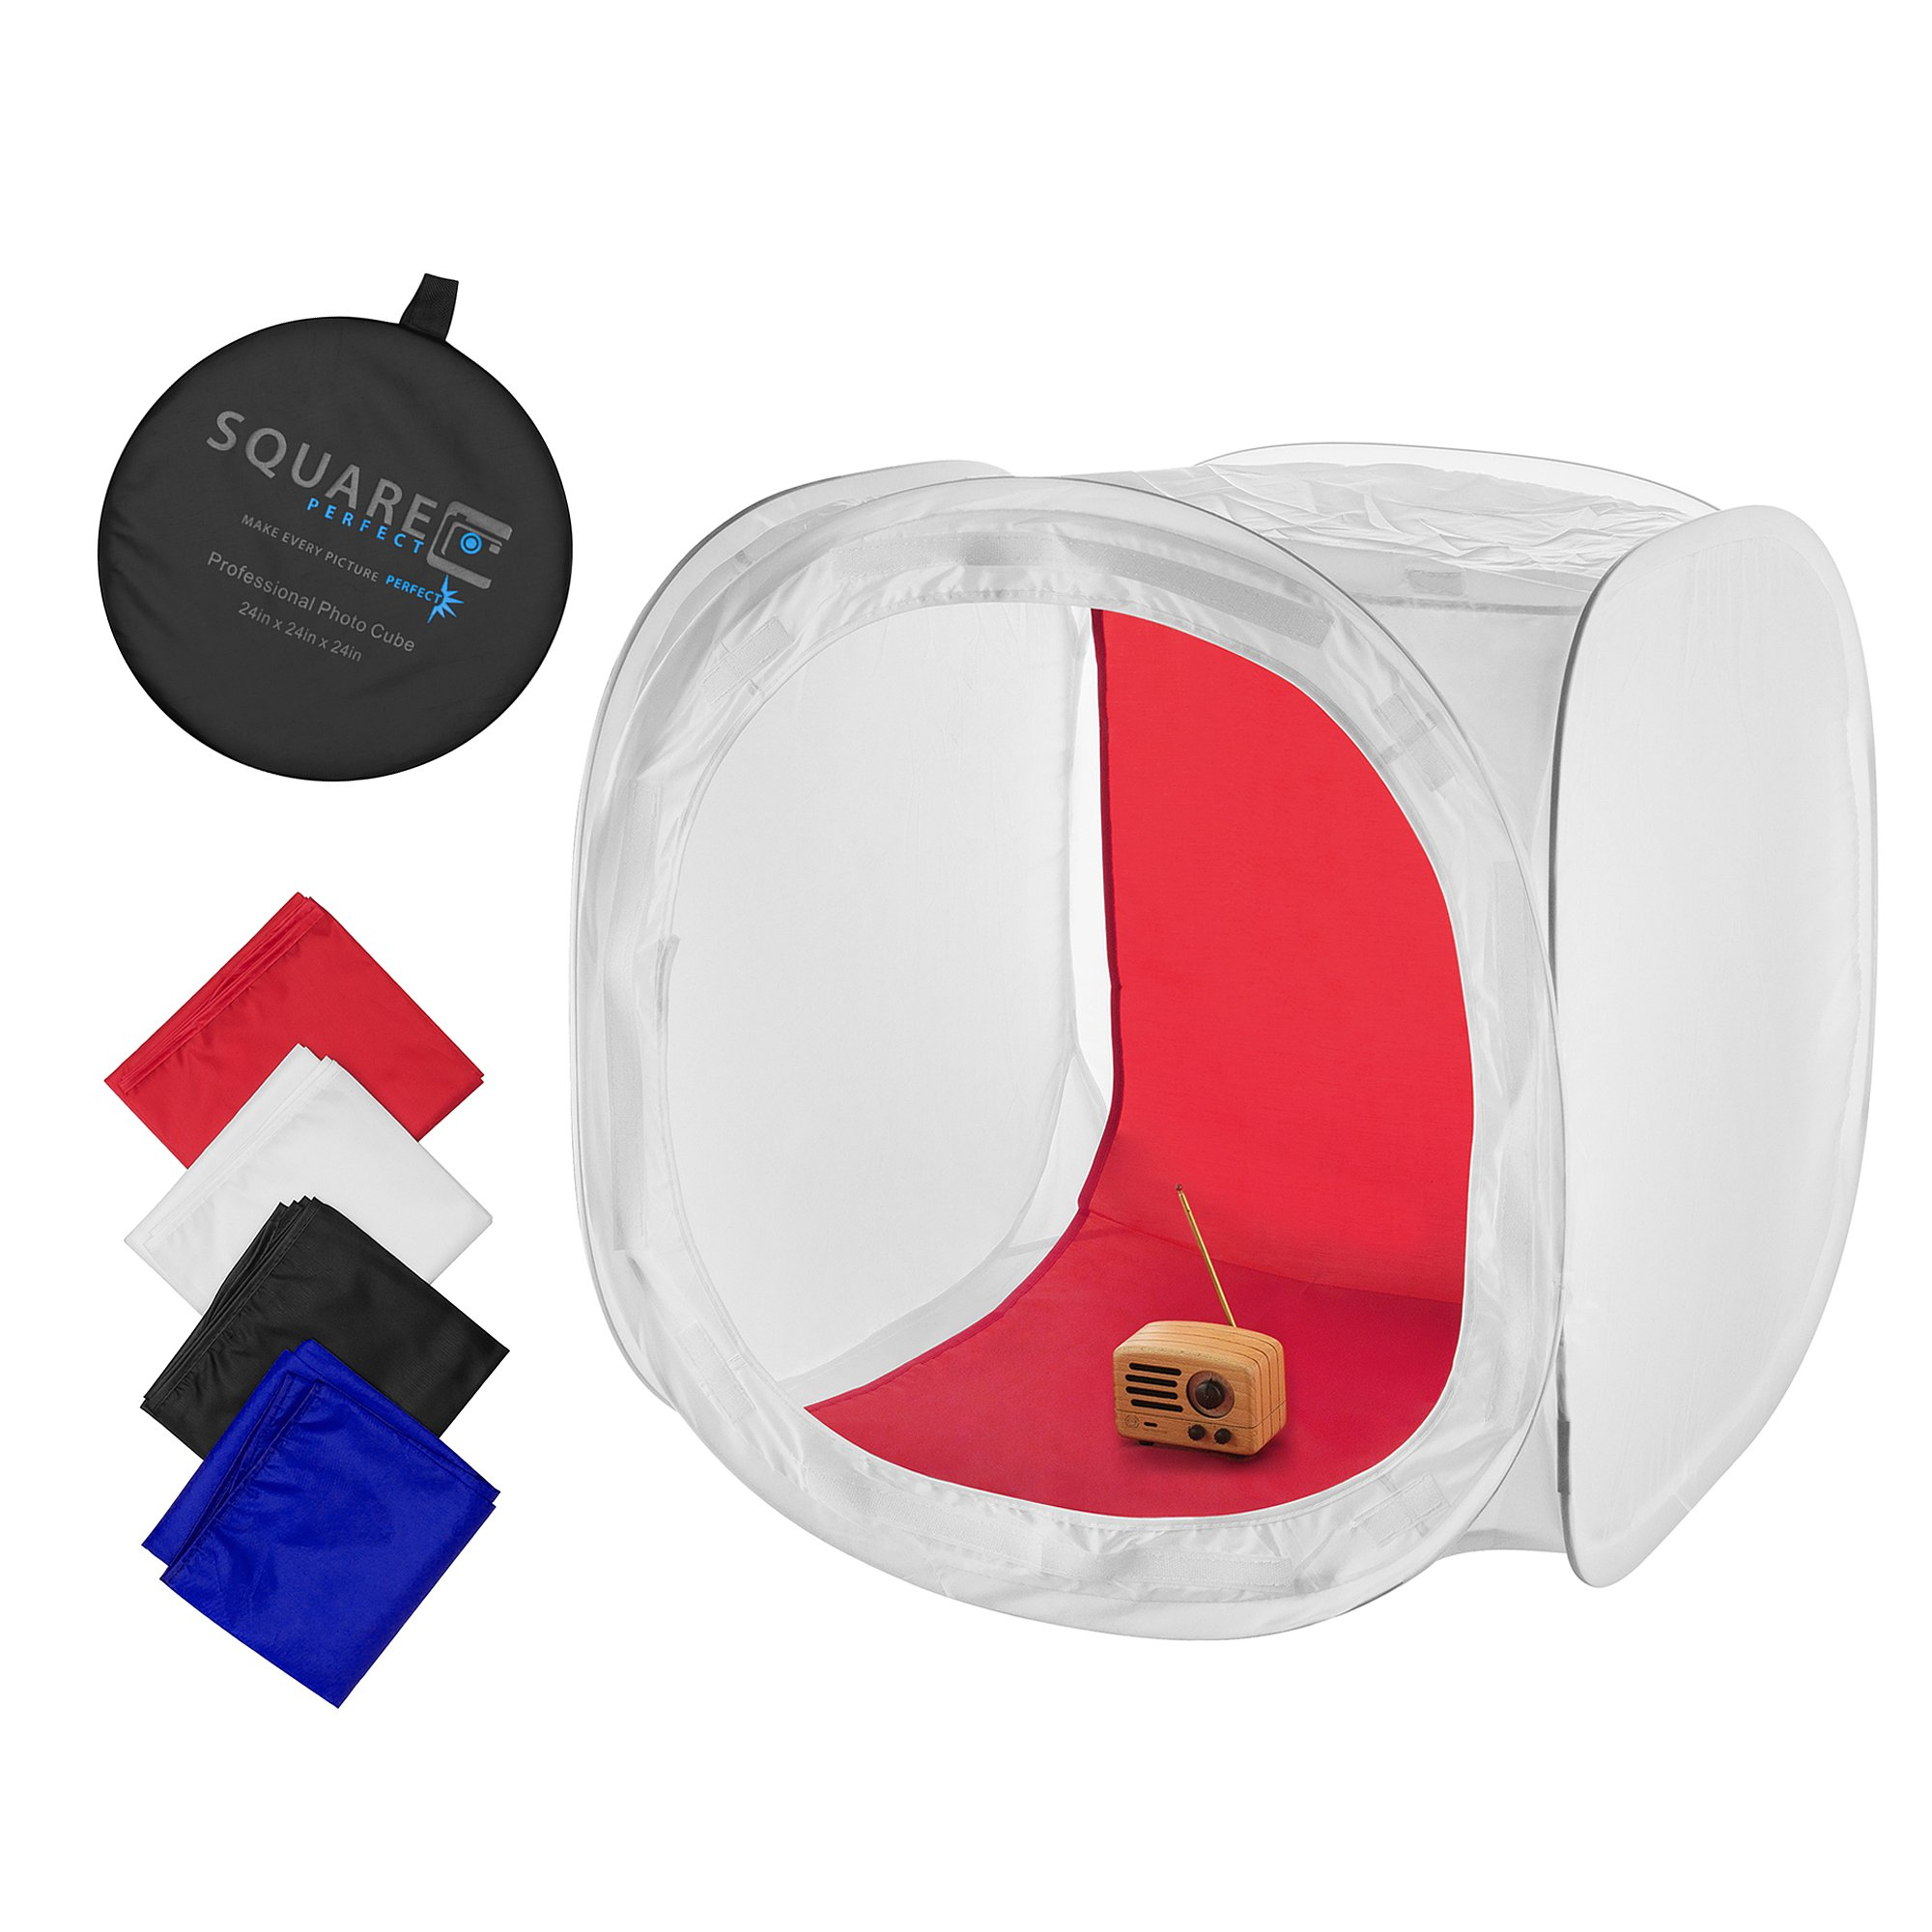 Square Perfect 24 Inch Classic Photography Light Tent - Softbox w/4 Backgrounds